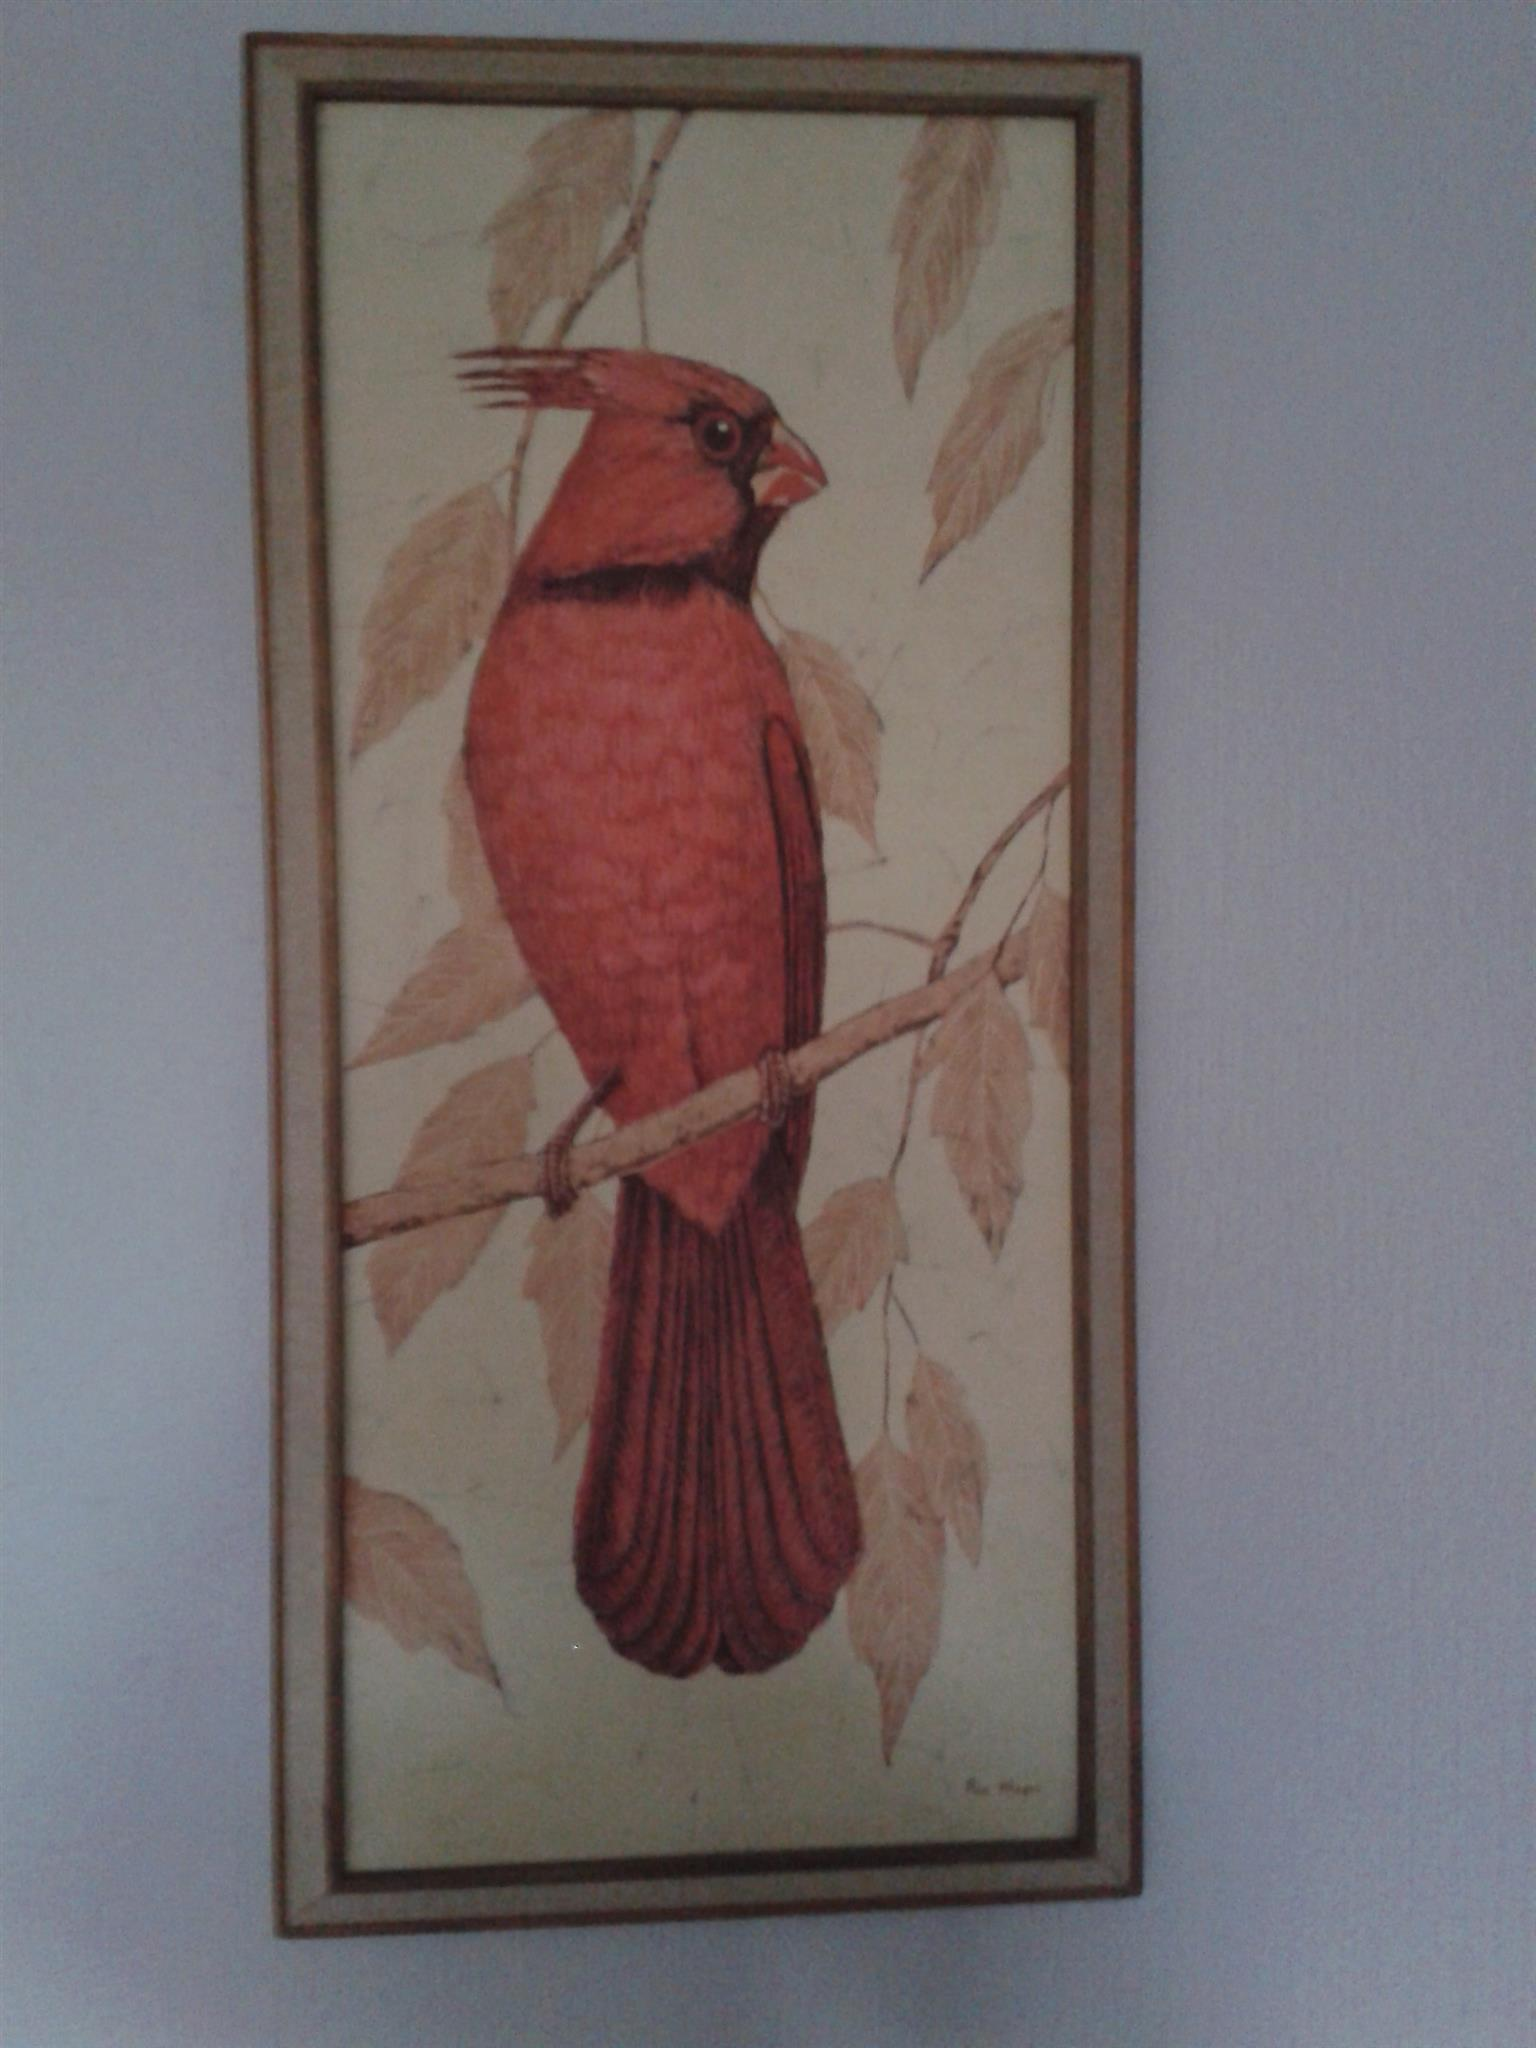 Framed Batik work - Bird